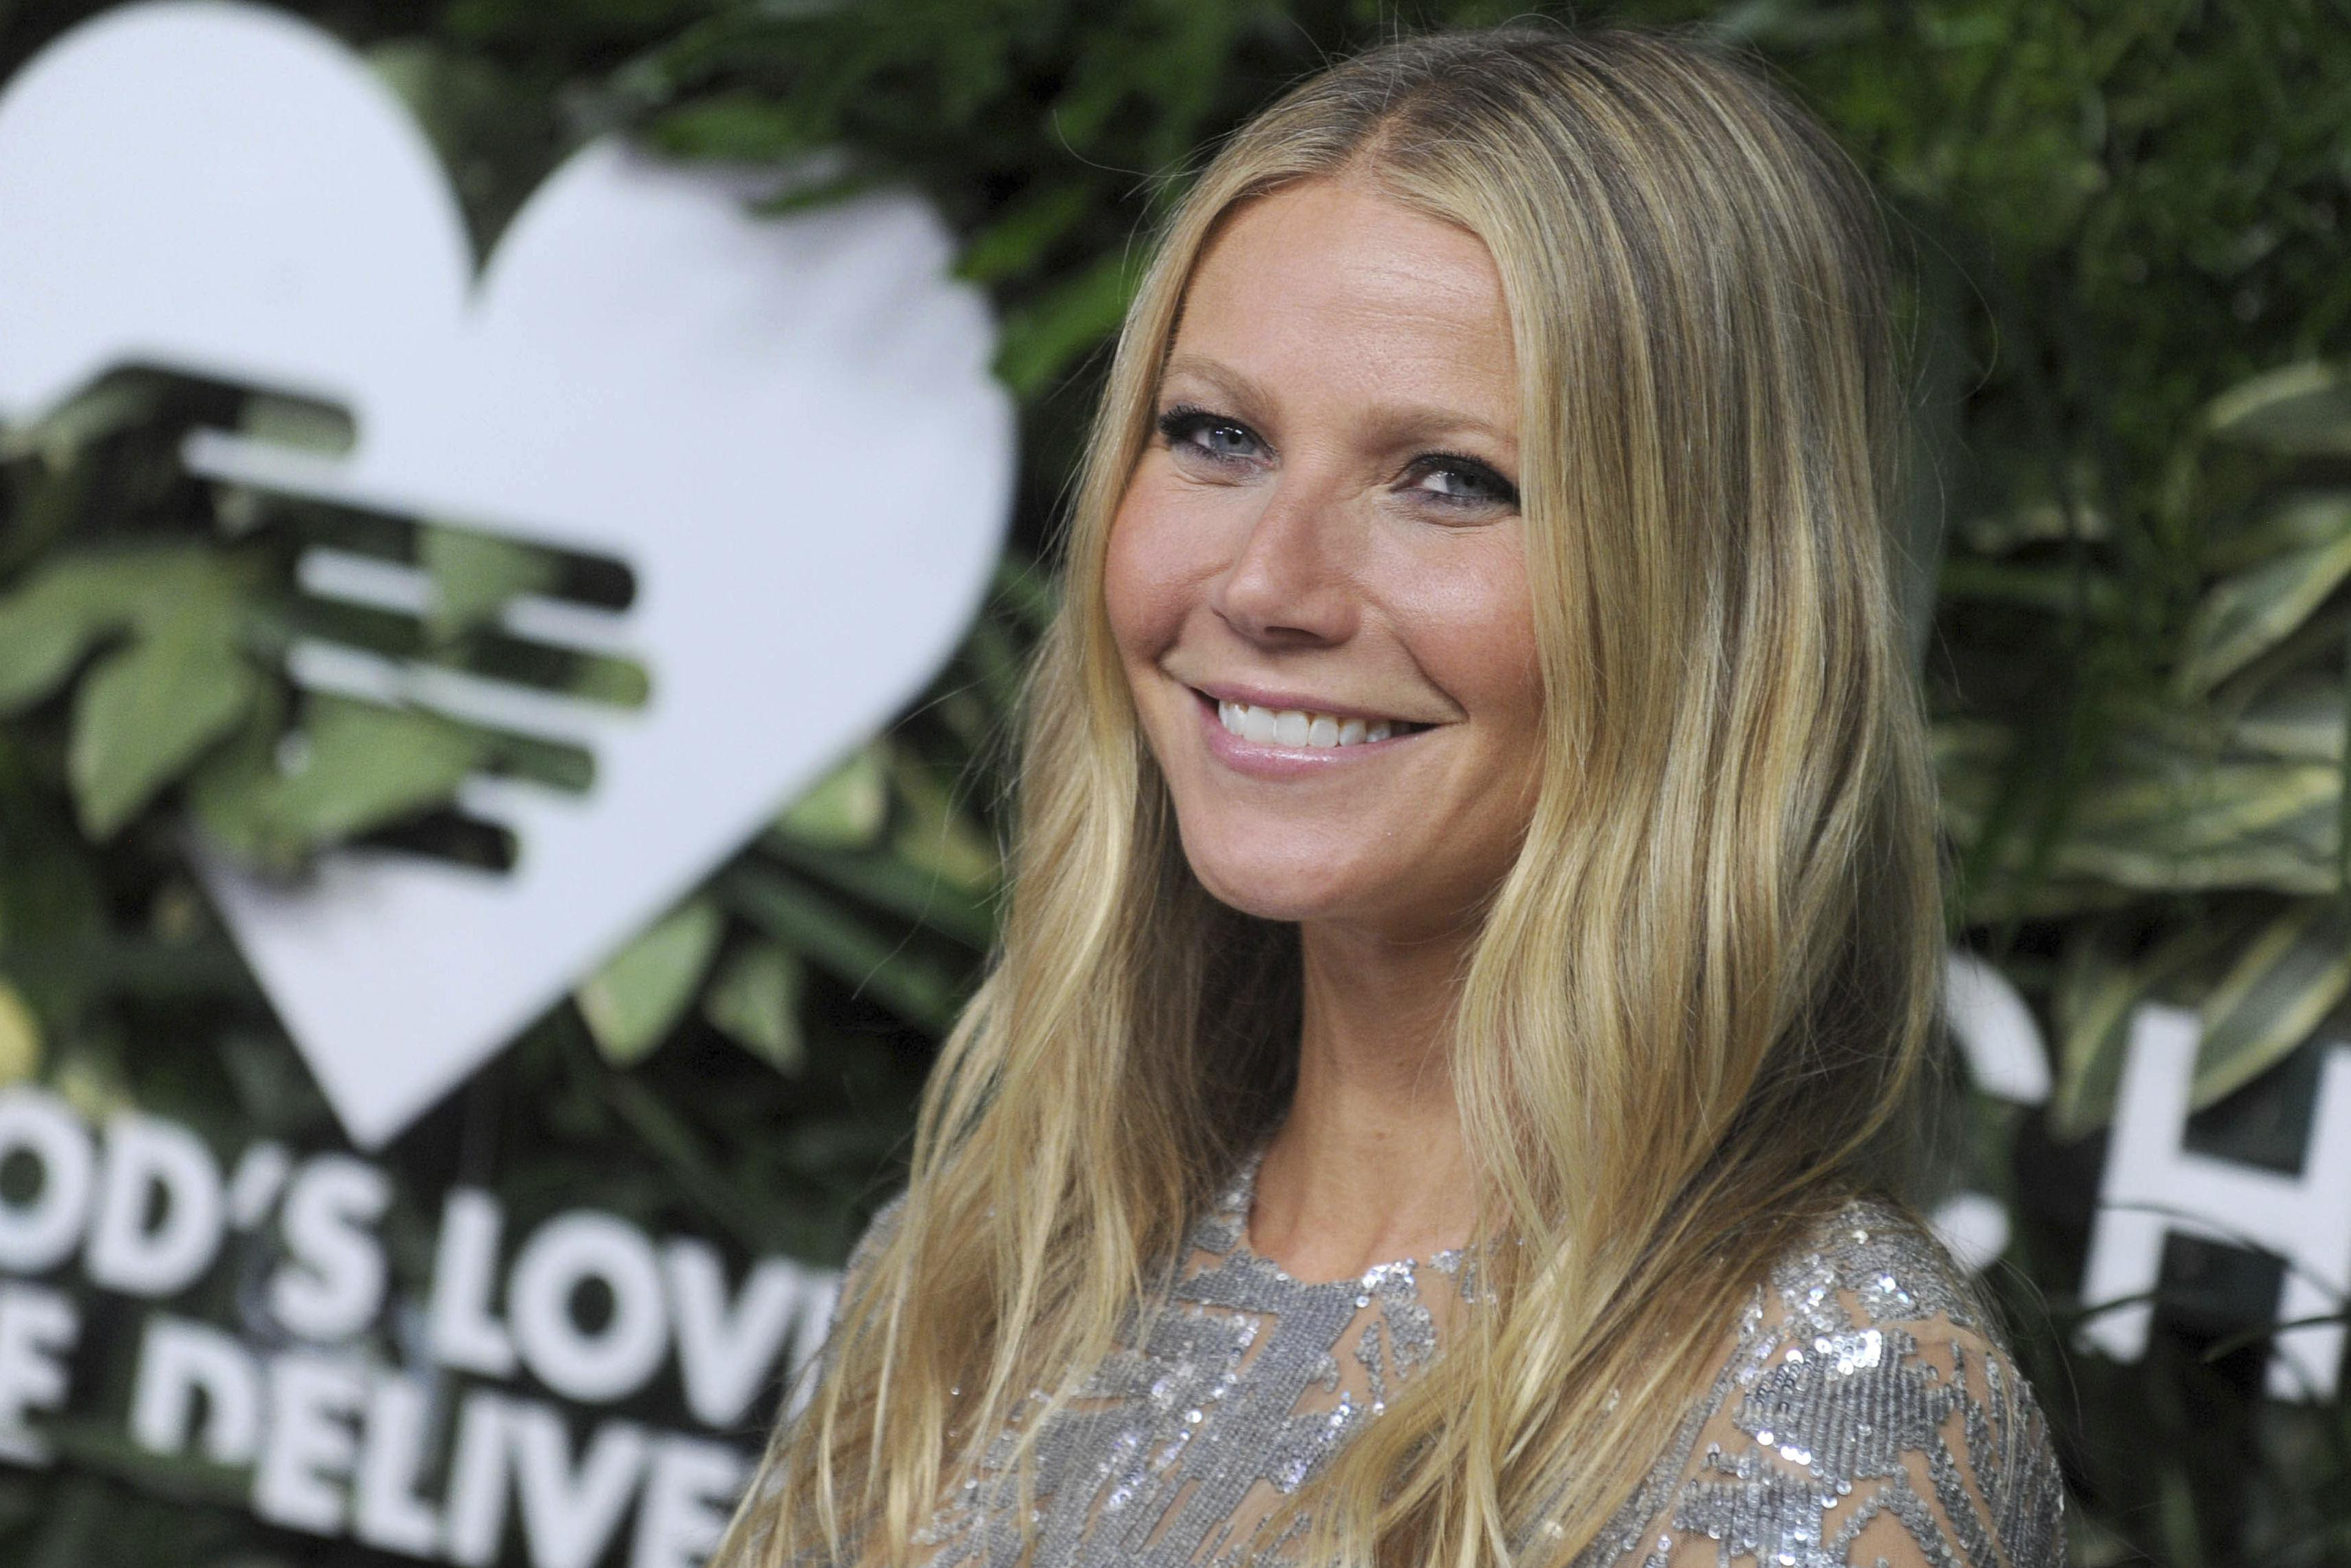 Gwyneth Paltrow reveals she suffered from coronavirus early on